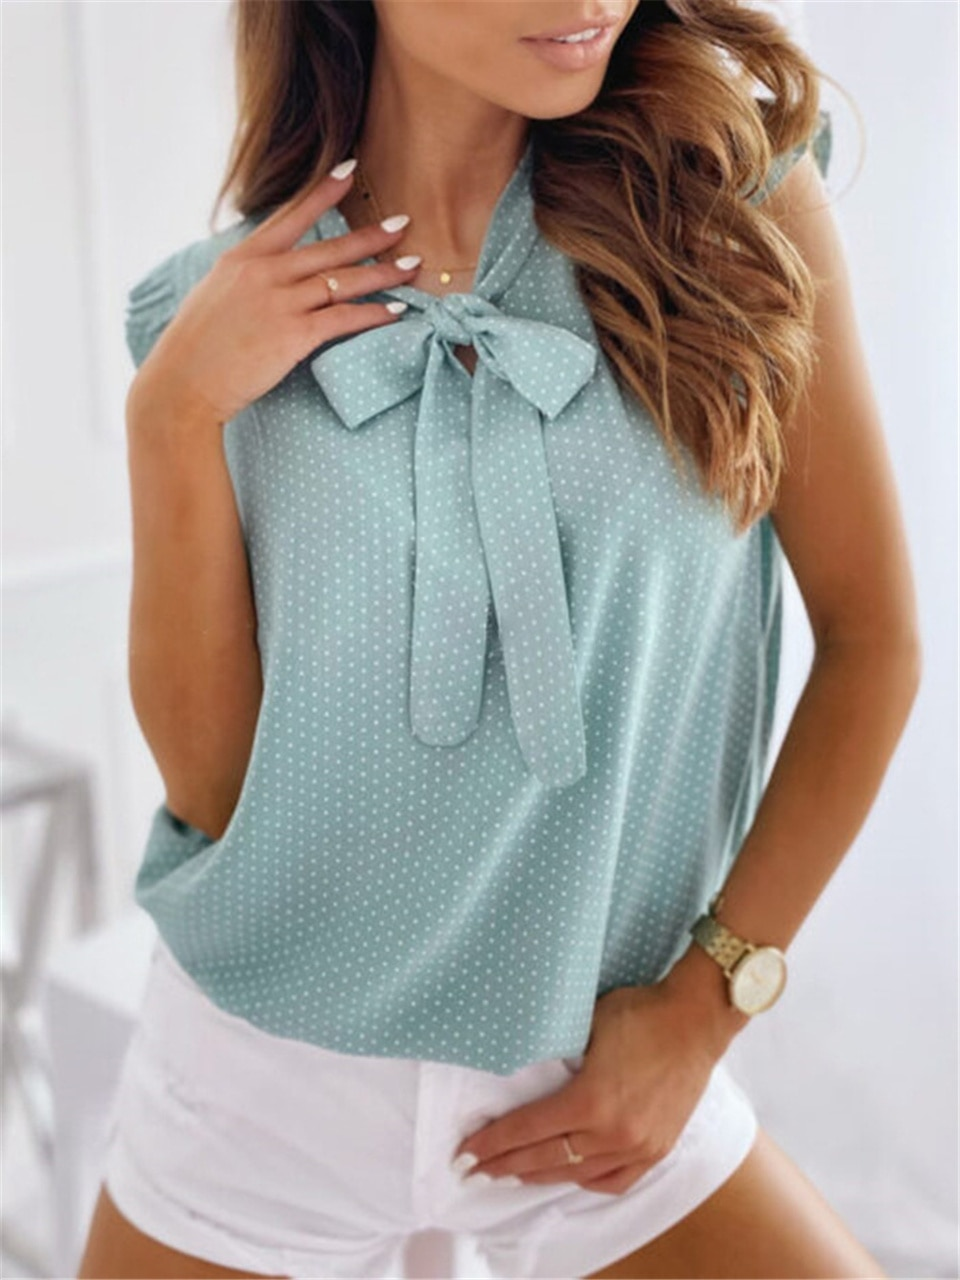 блузки и рубашки Блузки Sleeveless Shirt Summer Bow Blouse Shirt Women Polka Dot Blusas Female Ruffle Blouses Pullover Women Vintage Blusa Блузки